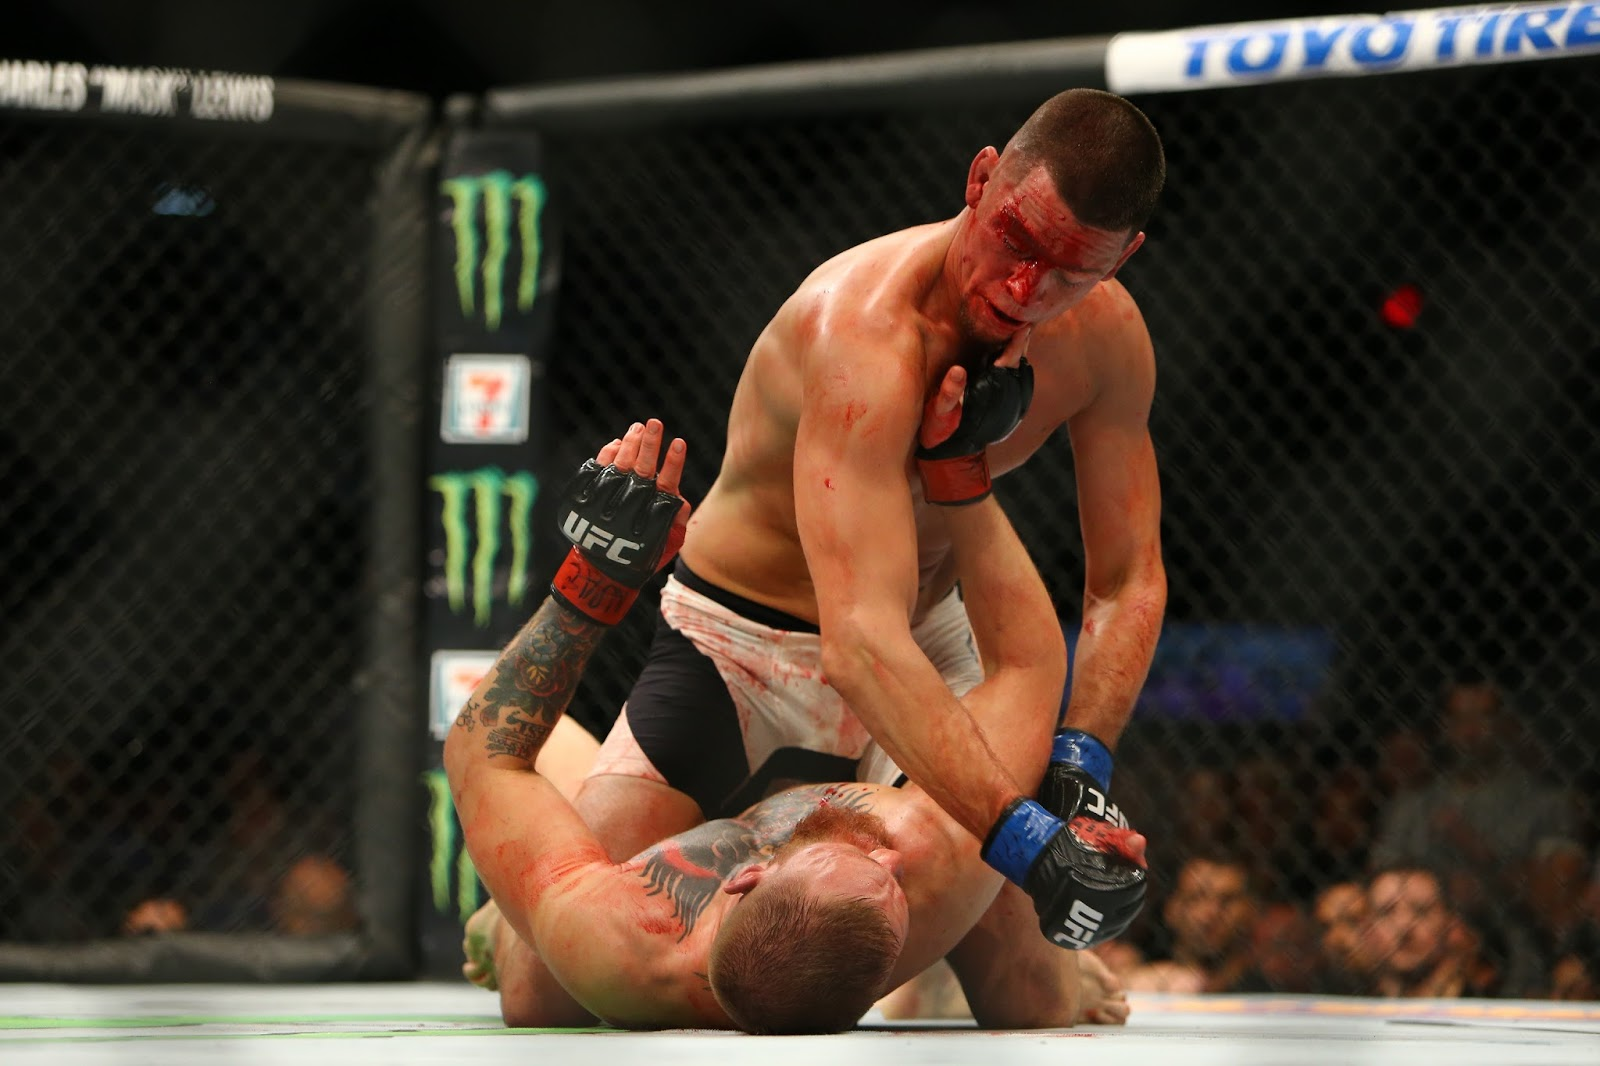 CONOR MCGREGOR VS. NATE DIAZ 5